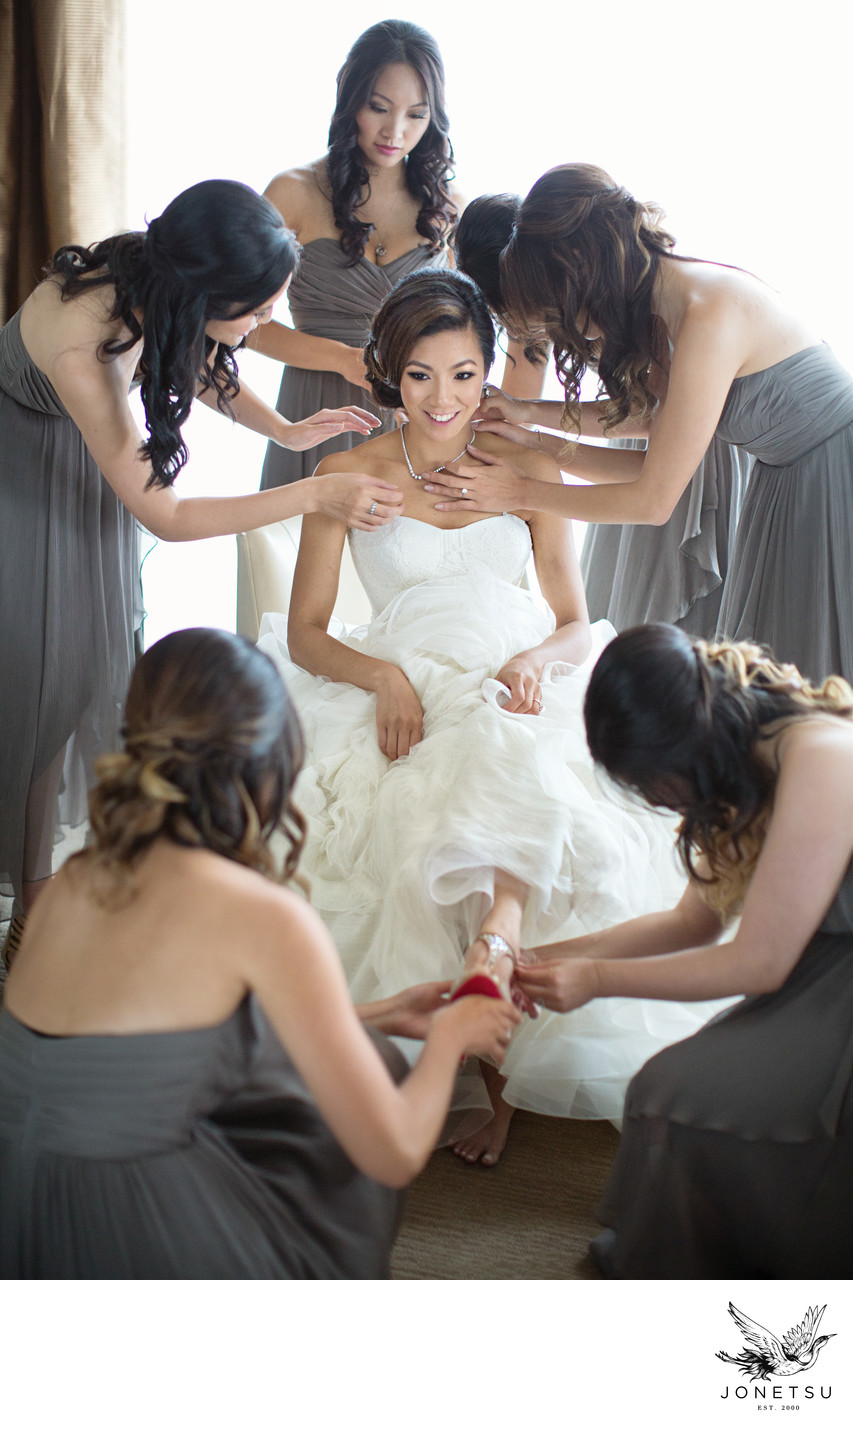 Vancouver bridesmaids in gowns help bride in Vera Wang